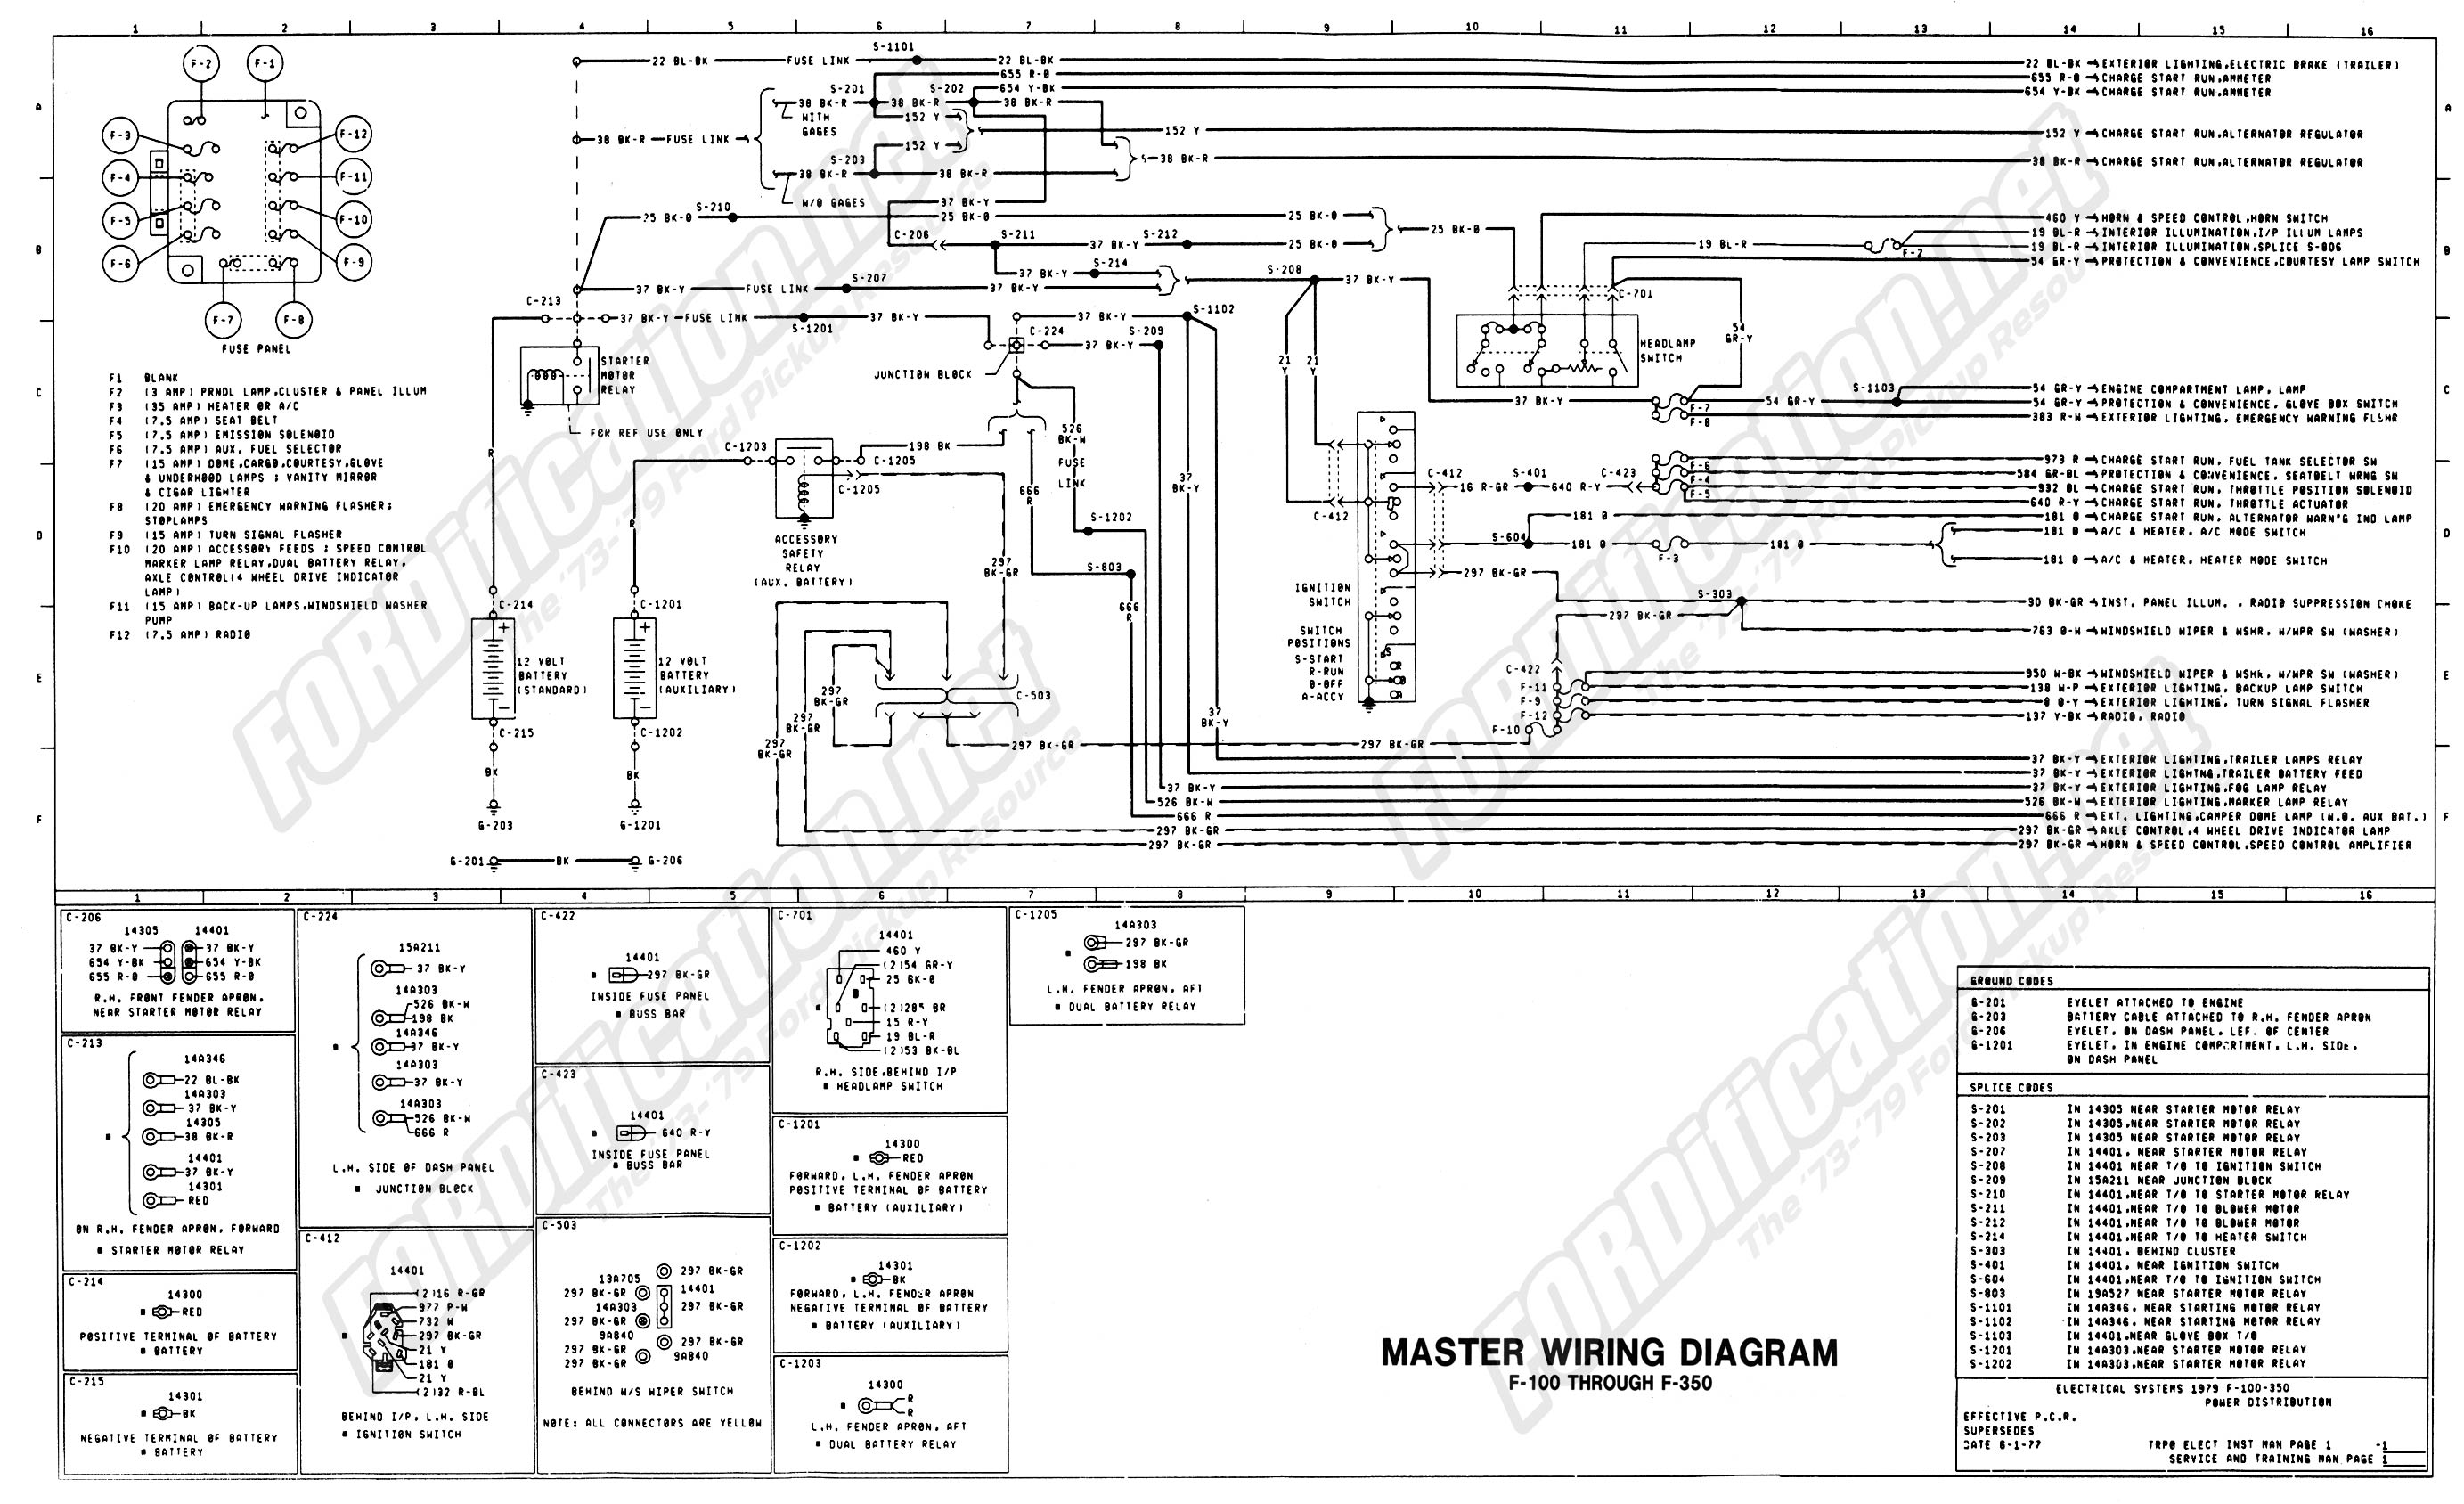 wiring_79master_1of9 1973 1979 ford truck wiring diagrams & schematics fordification net c tec 800 series wiring diagram at soozxer.org